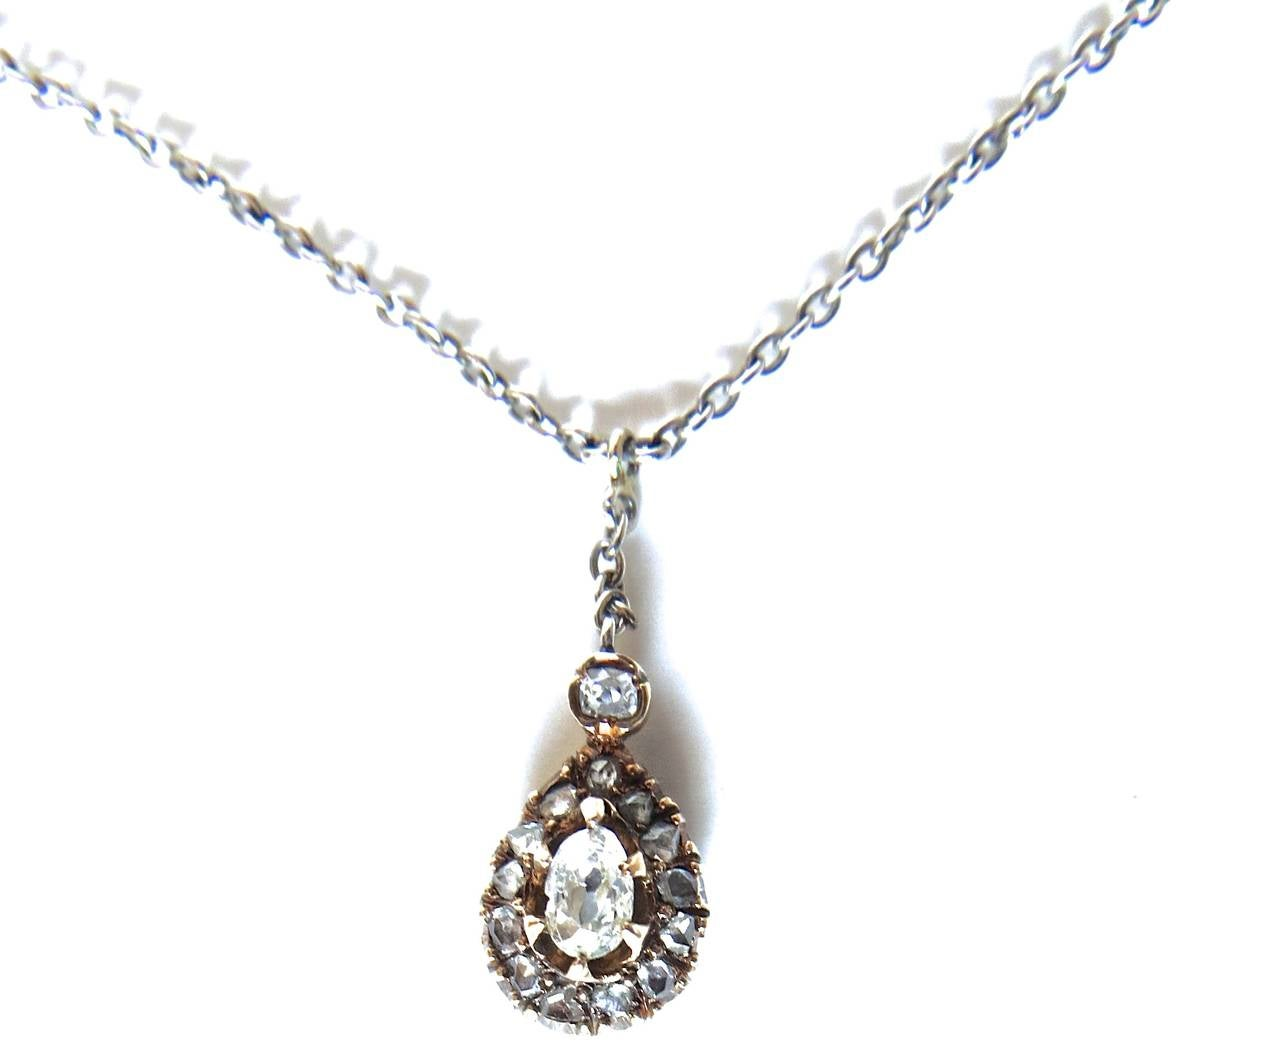 Diamond and Gold Victorian Necklace, circa 1895 For Sale 2